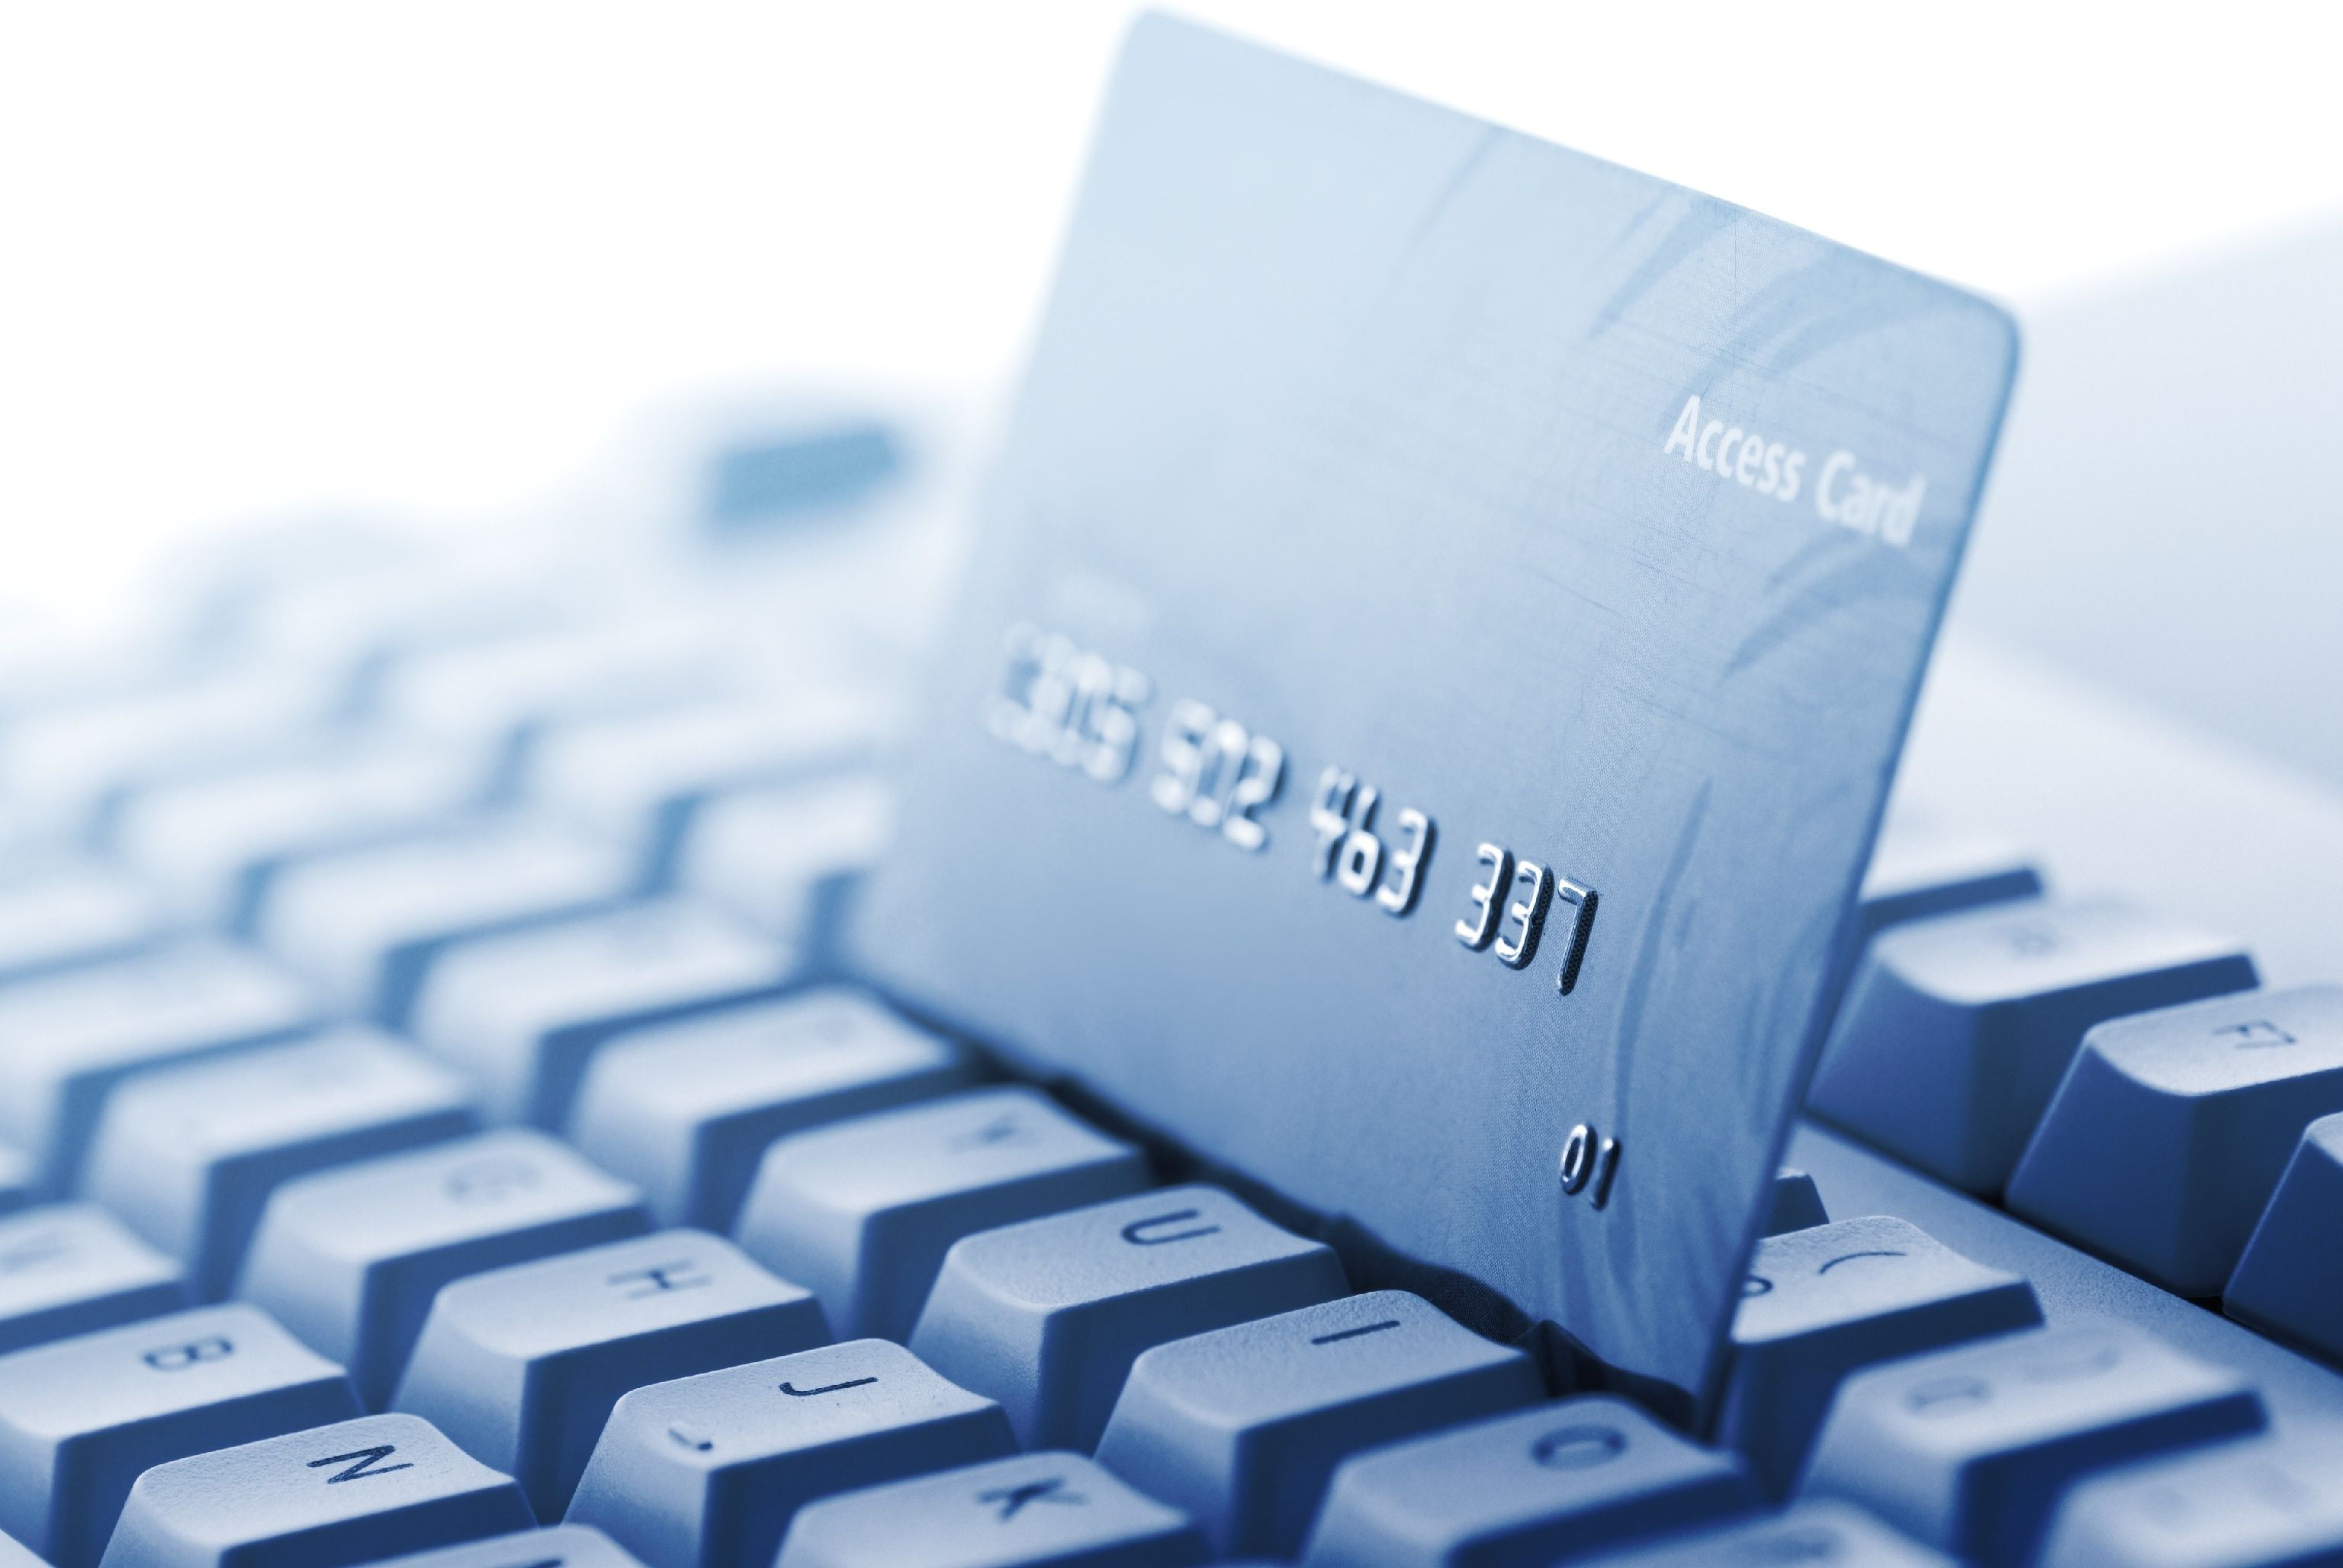 How can you reduce your accounts receivables try a ccof